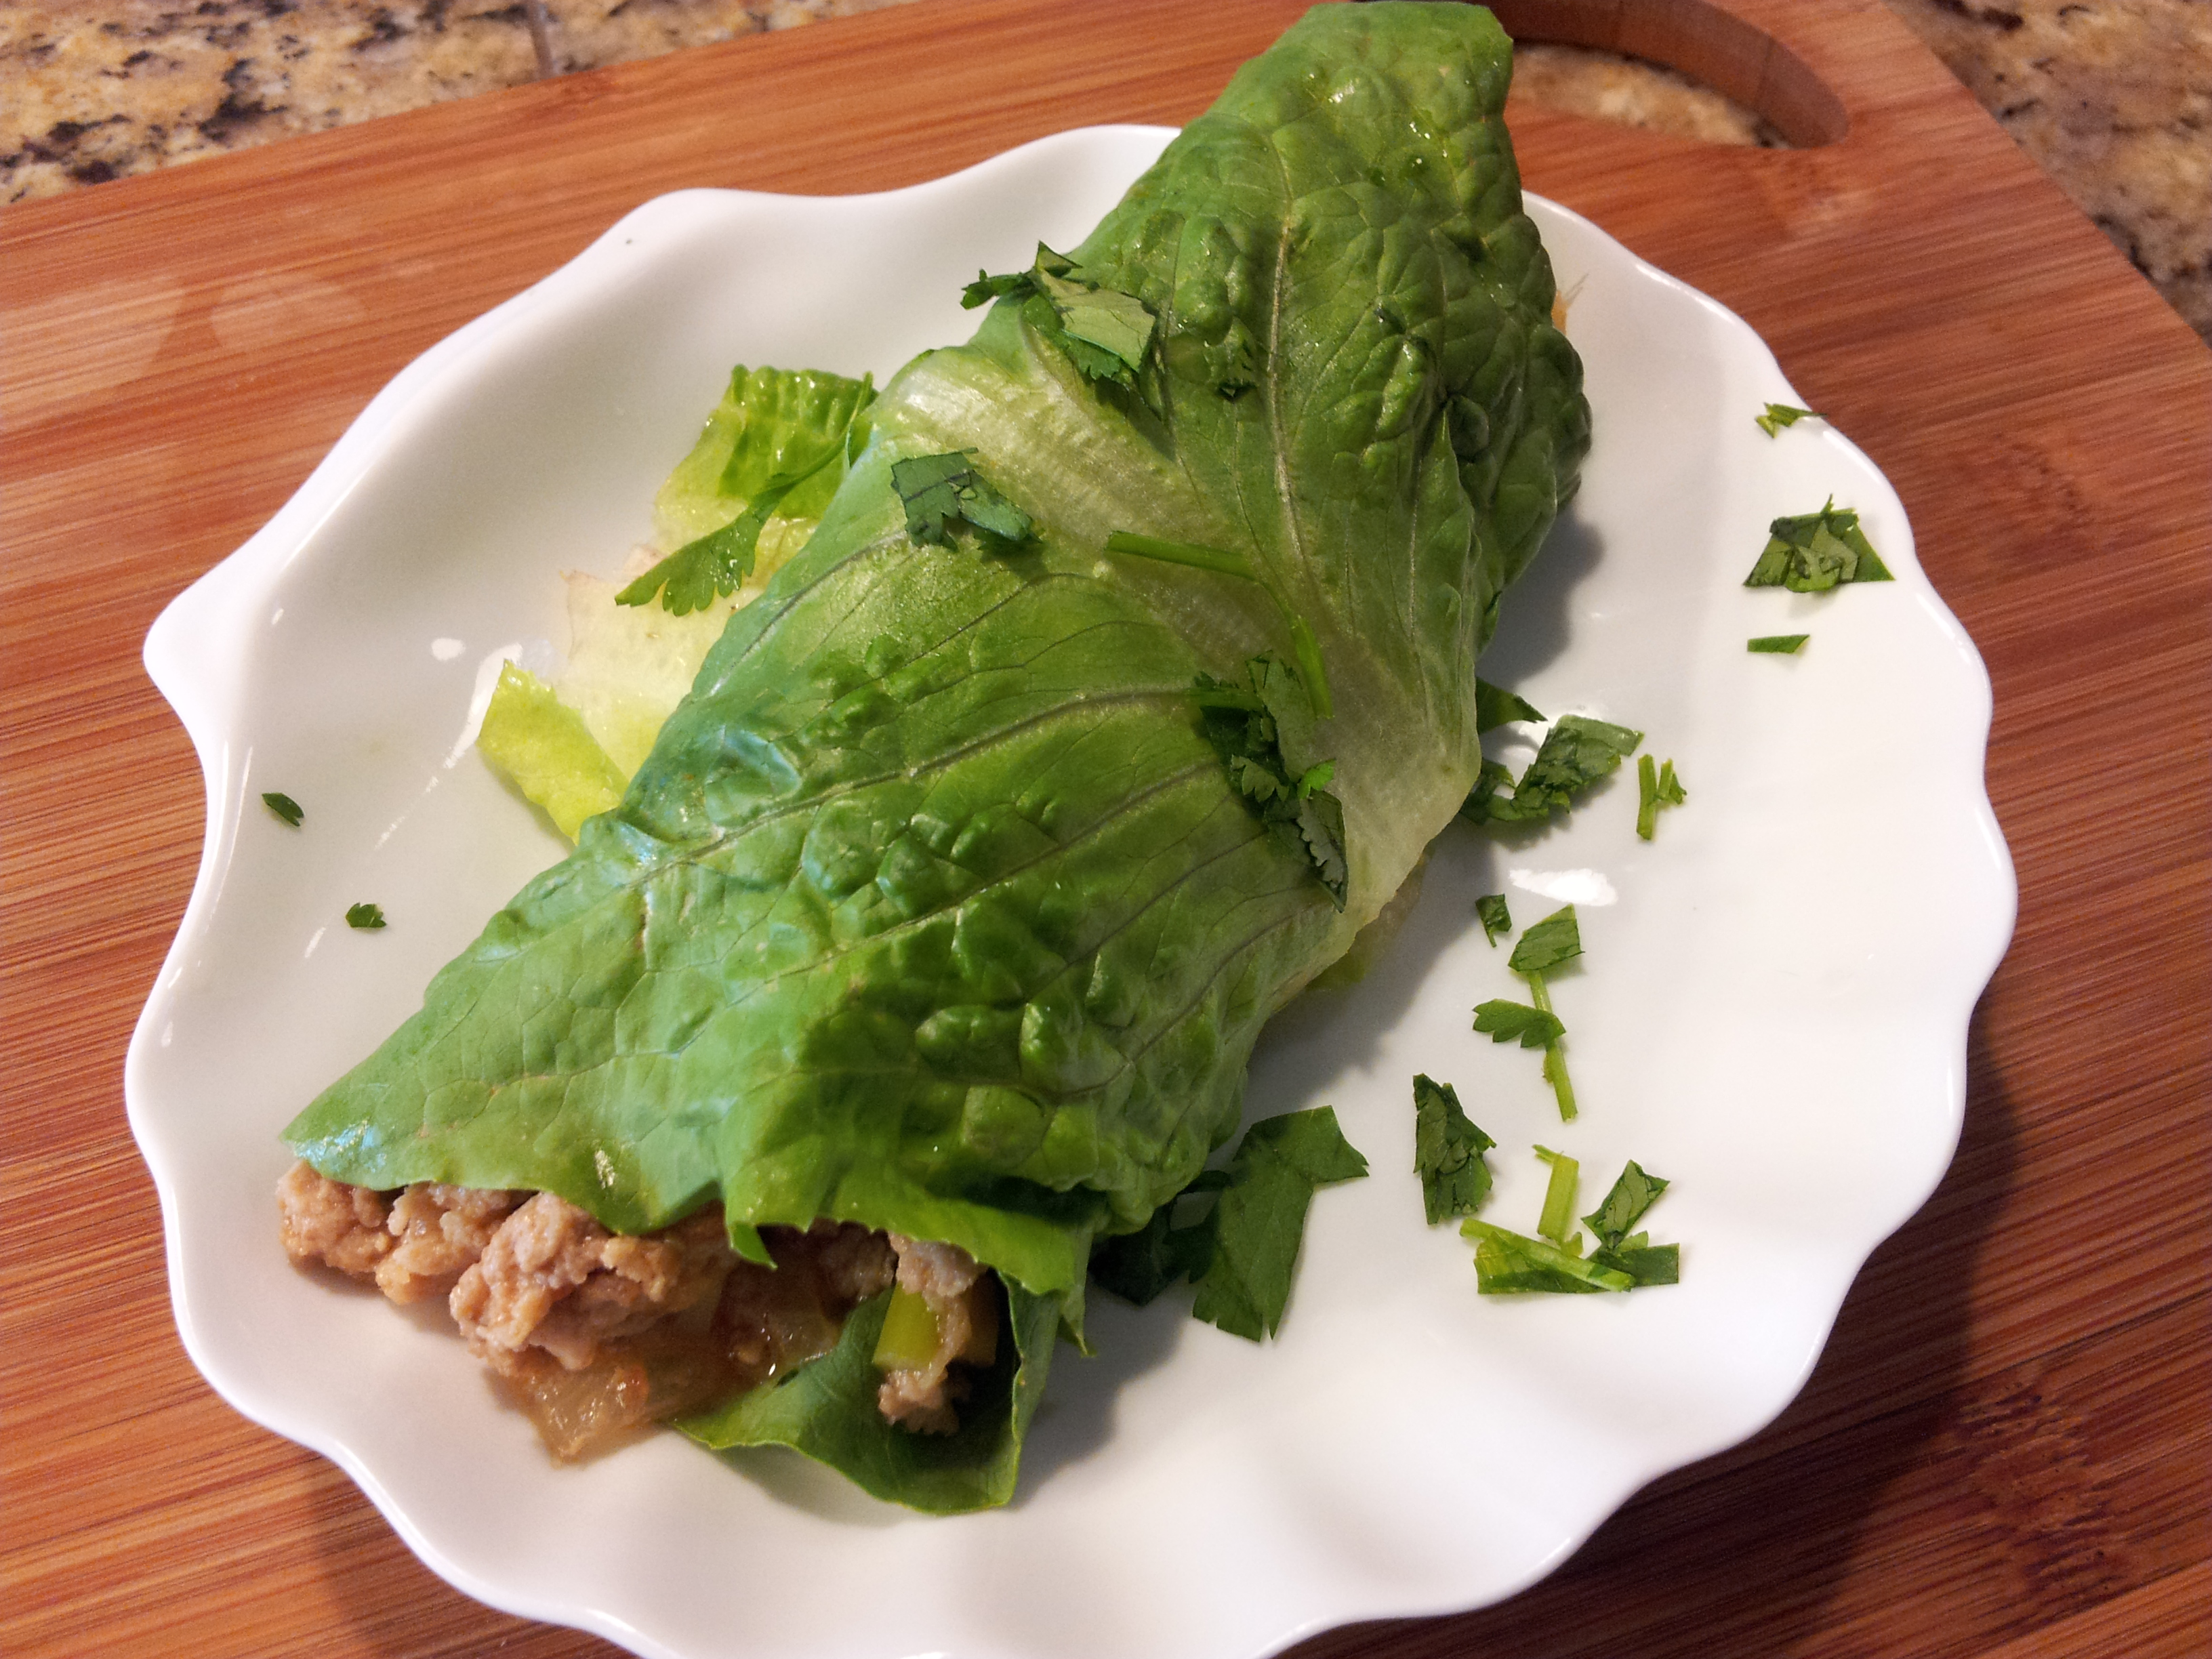 ... . http://iowagirleats.com/2011/04/26/p-f-changs-lettuce-wraps-remade